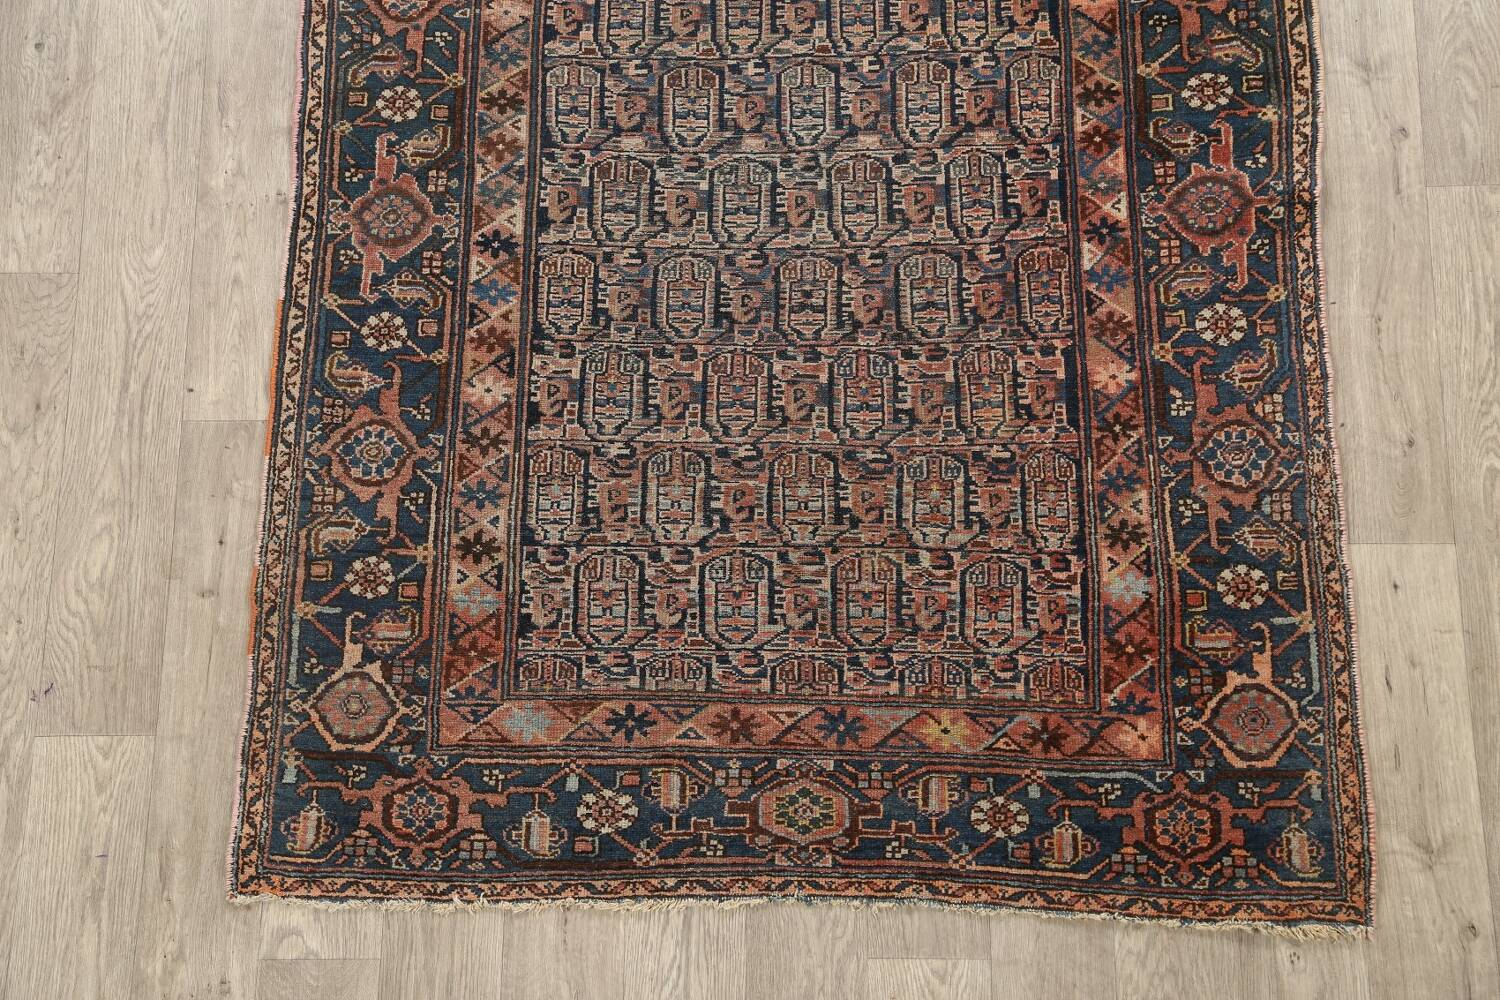 Pre-1900 Antique Tribal Malayer Persian Area Rug 4x6 image 8